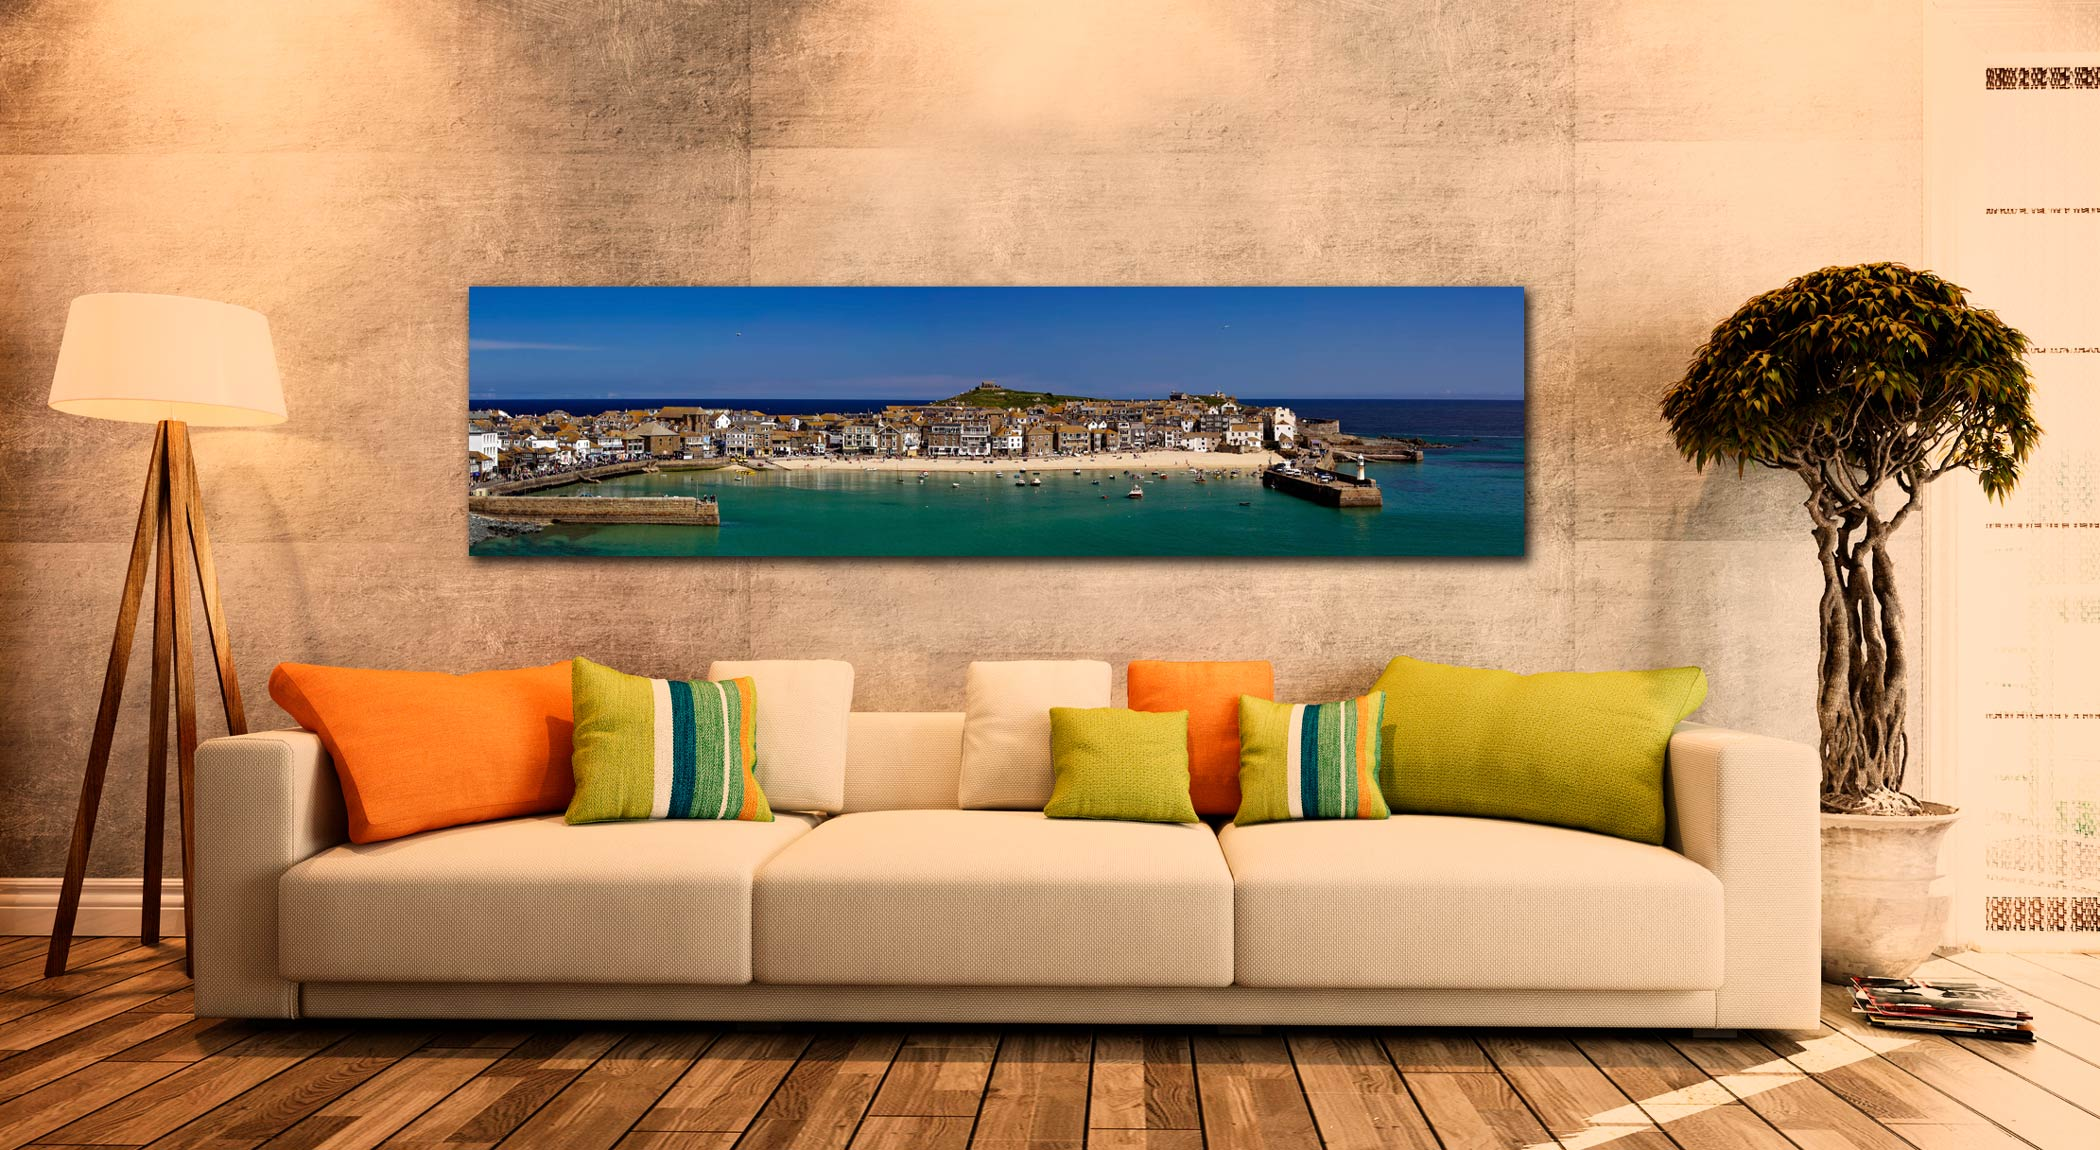 St Ives Harbour Panorama - Print Aluminium Backing With Acrylic Glazing on Wall